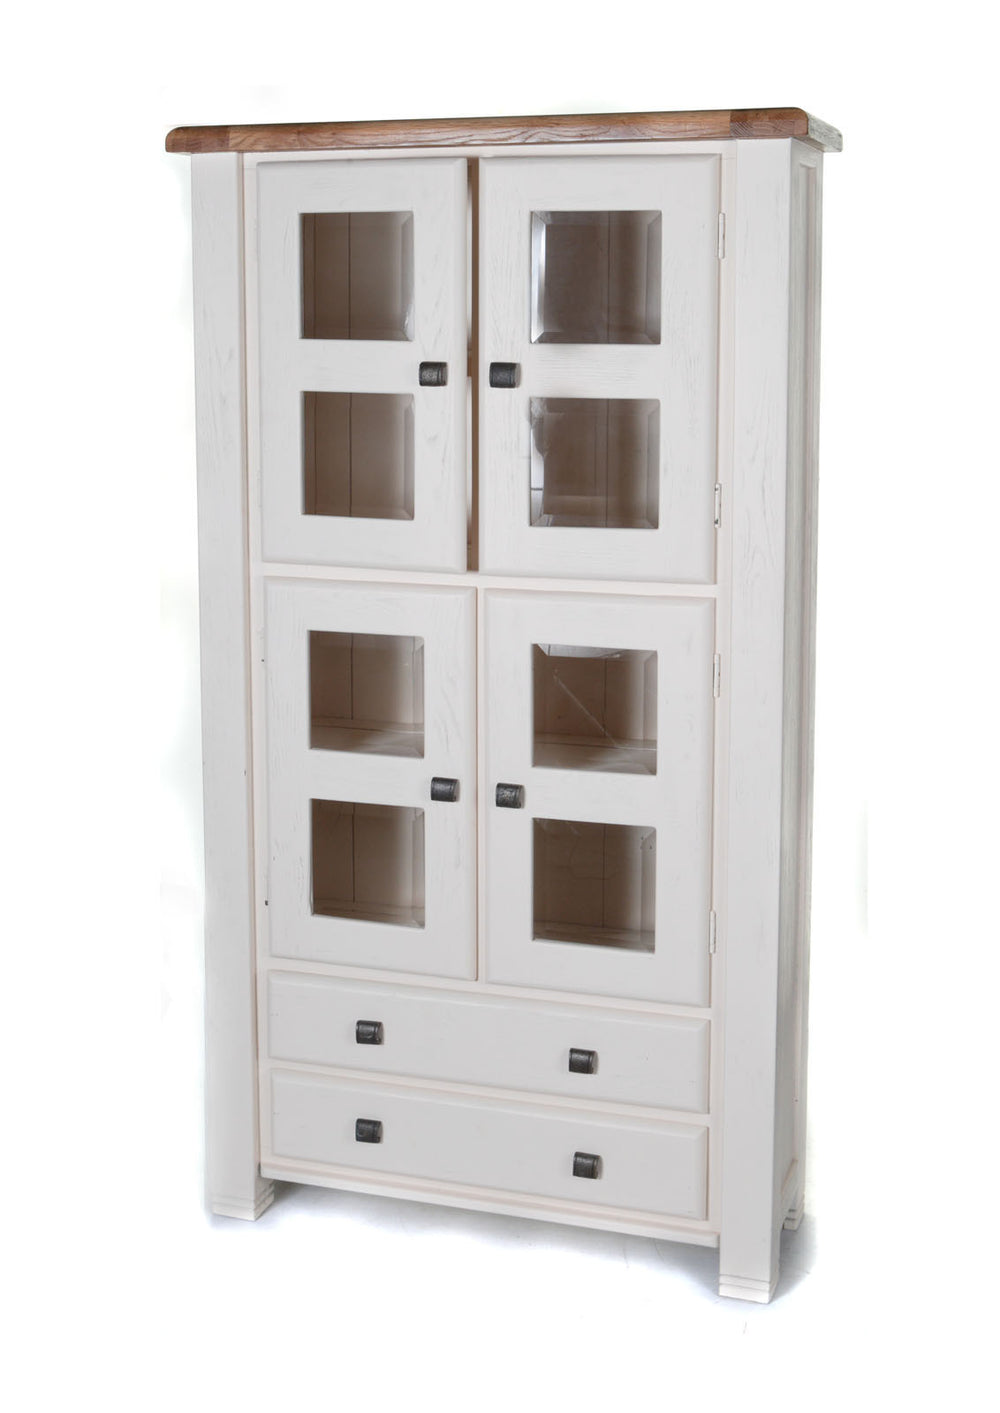 Danube oak white display cabinet by Furniture Clearance - discounted furniture for Ireland